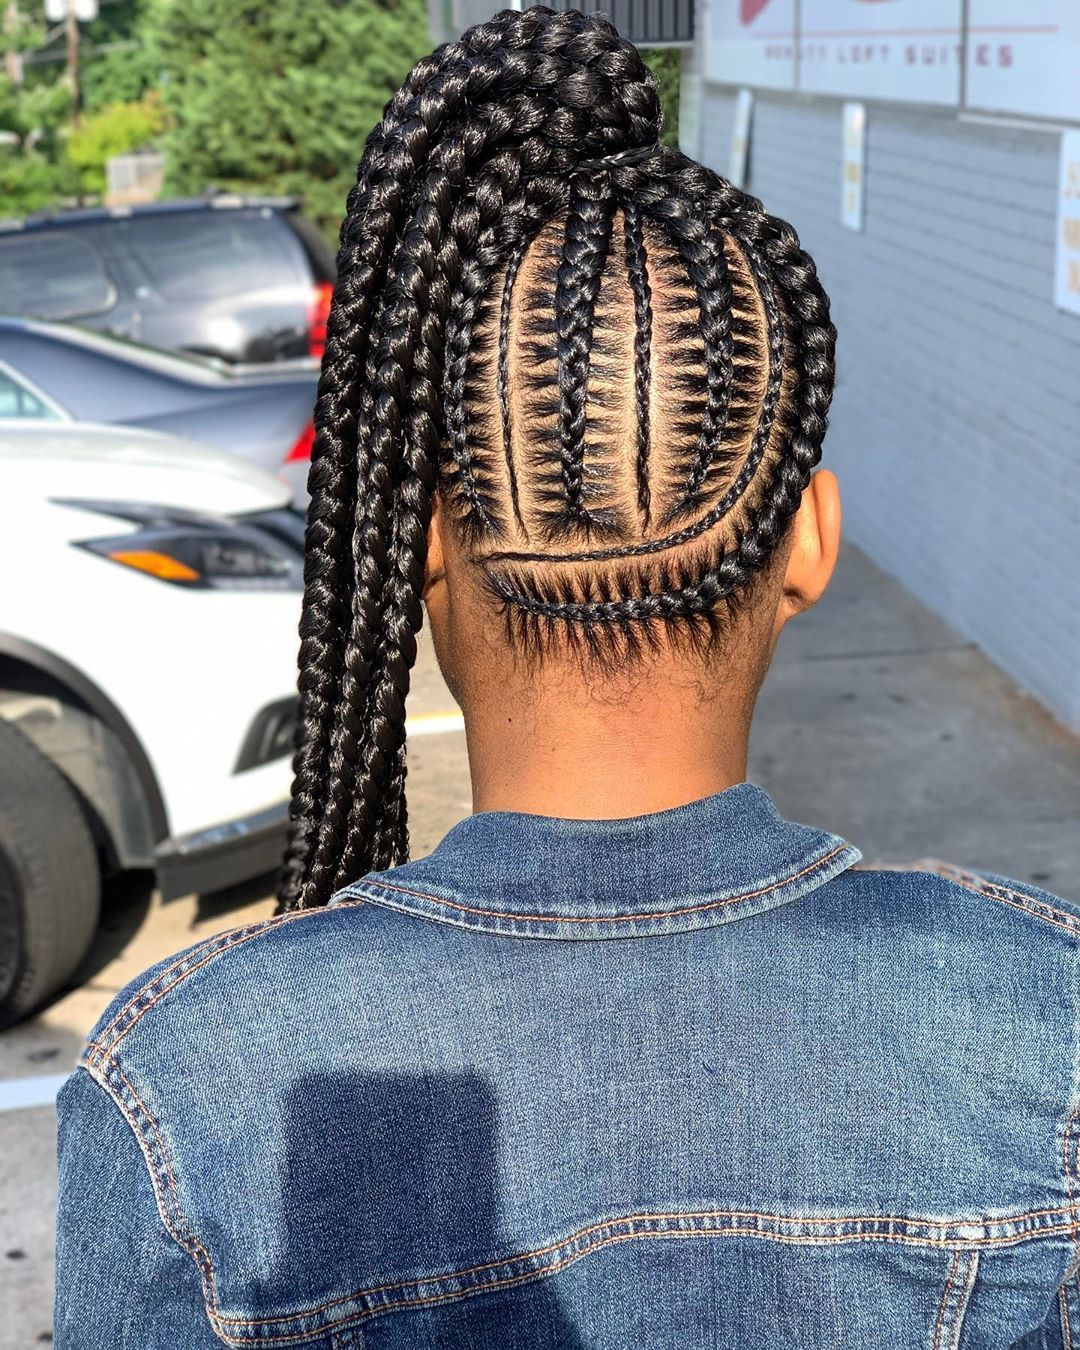 Curly Craze Crazy Hairstyles For African Americans Hair Styles African Hair Braiding Styles Braids For Black Women